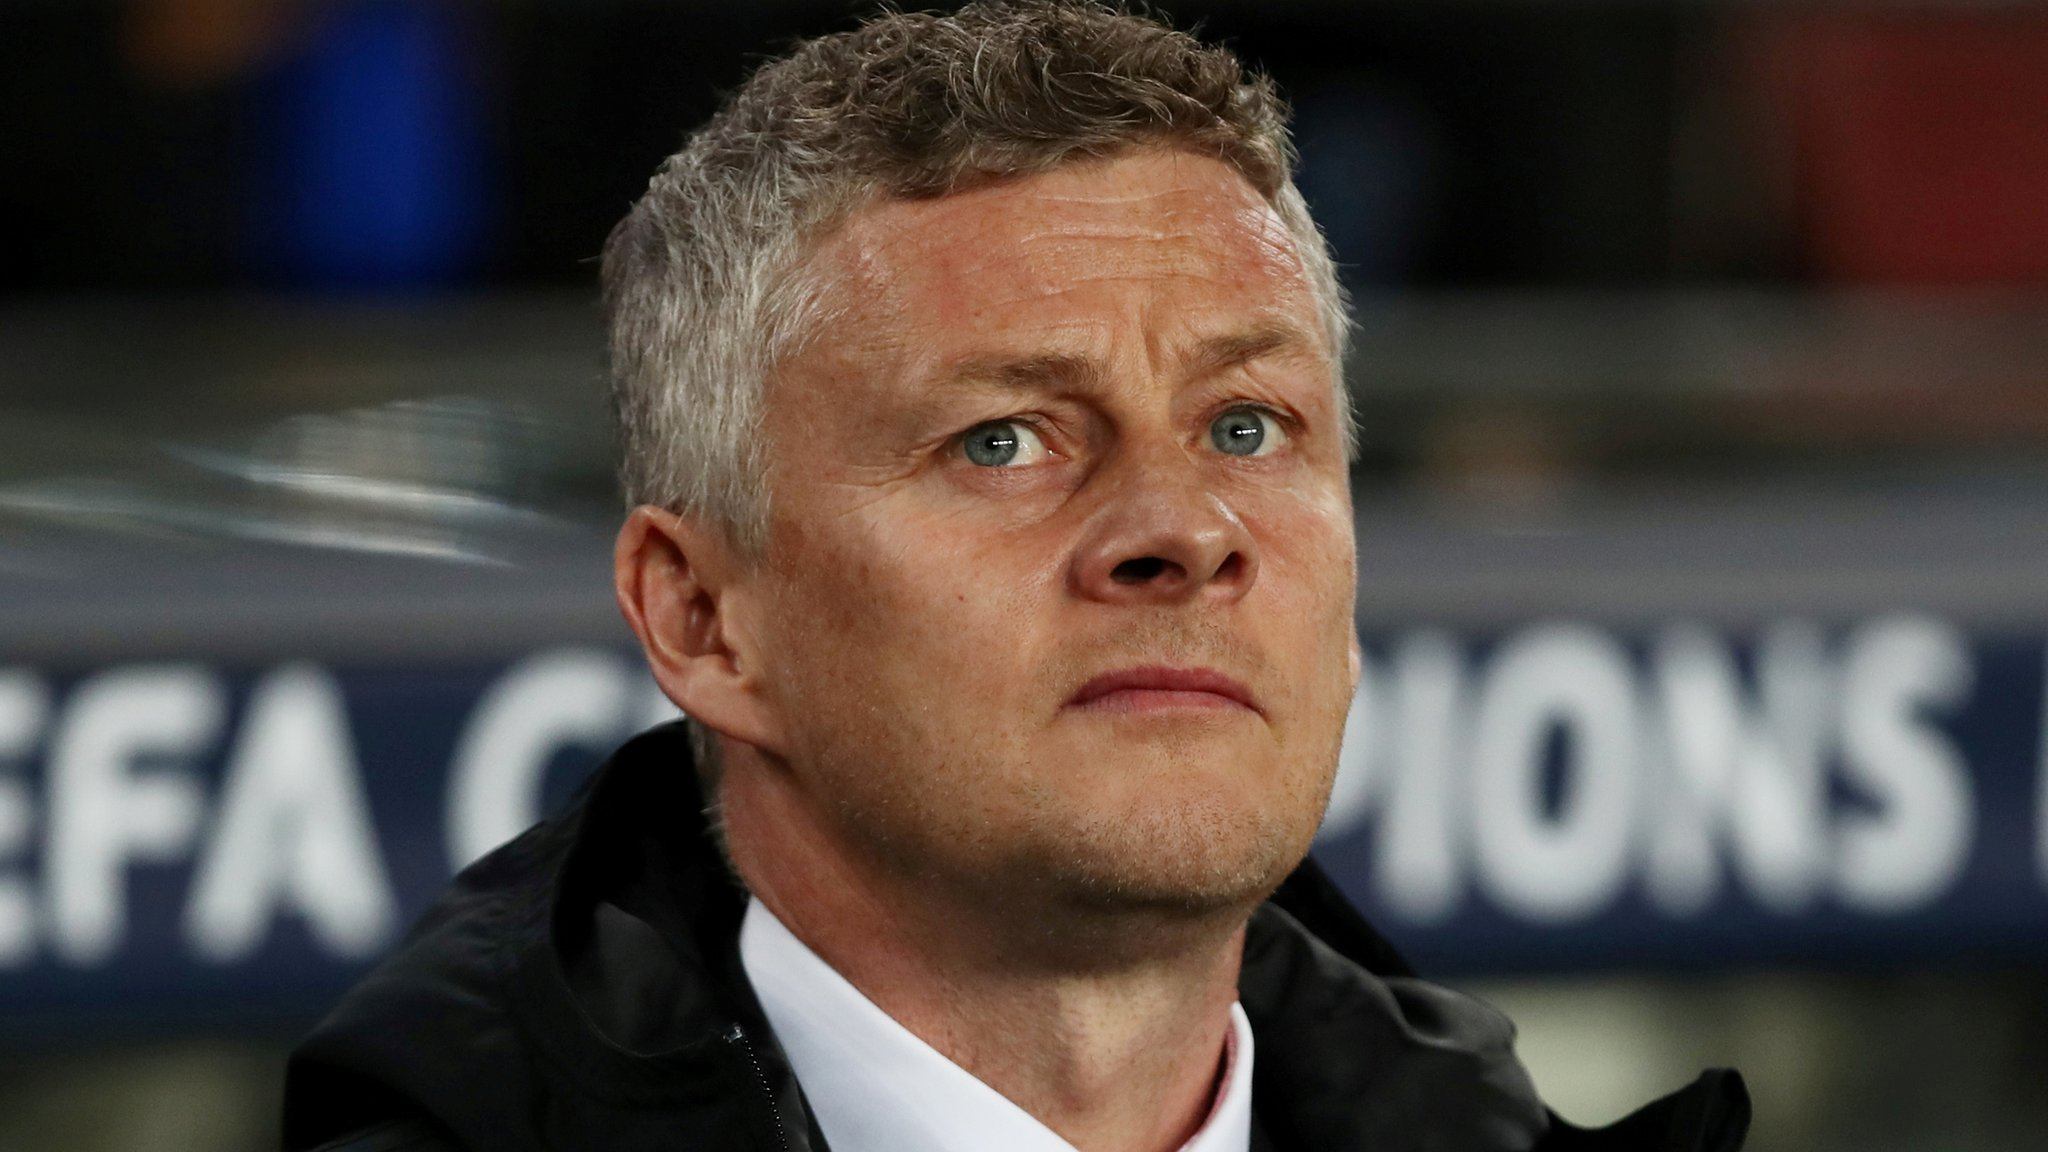 Ole Gunnar Solskjaer was the wrong choice as Man Utd manager - Jenas